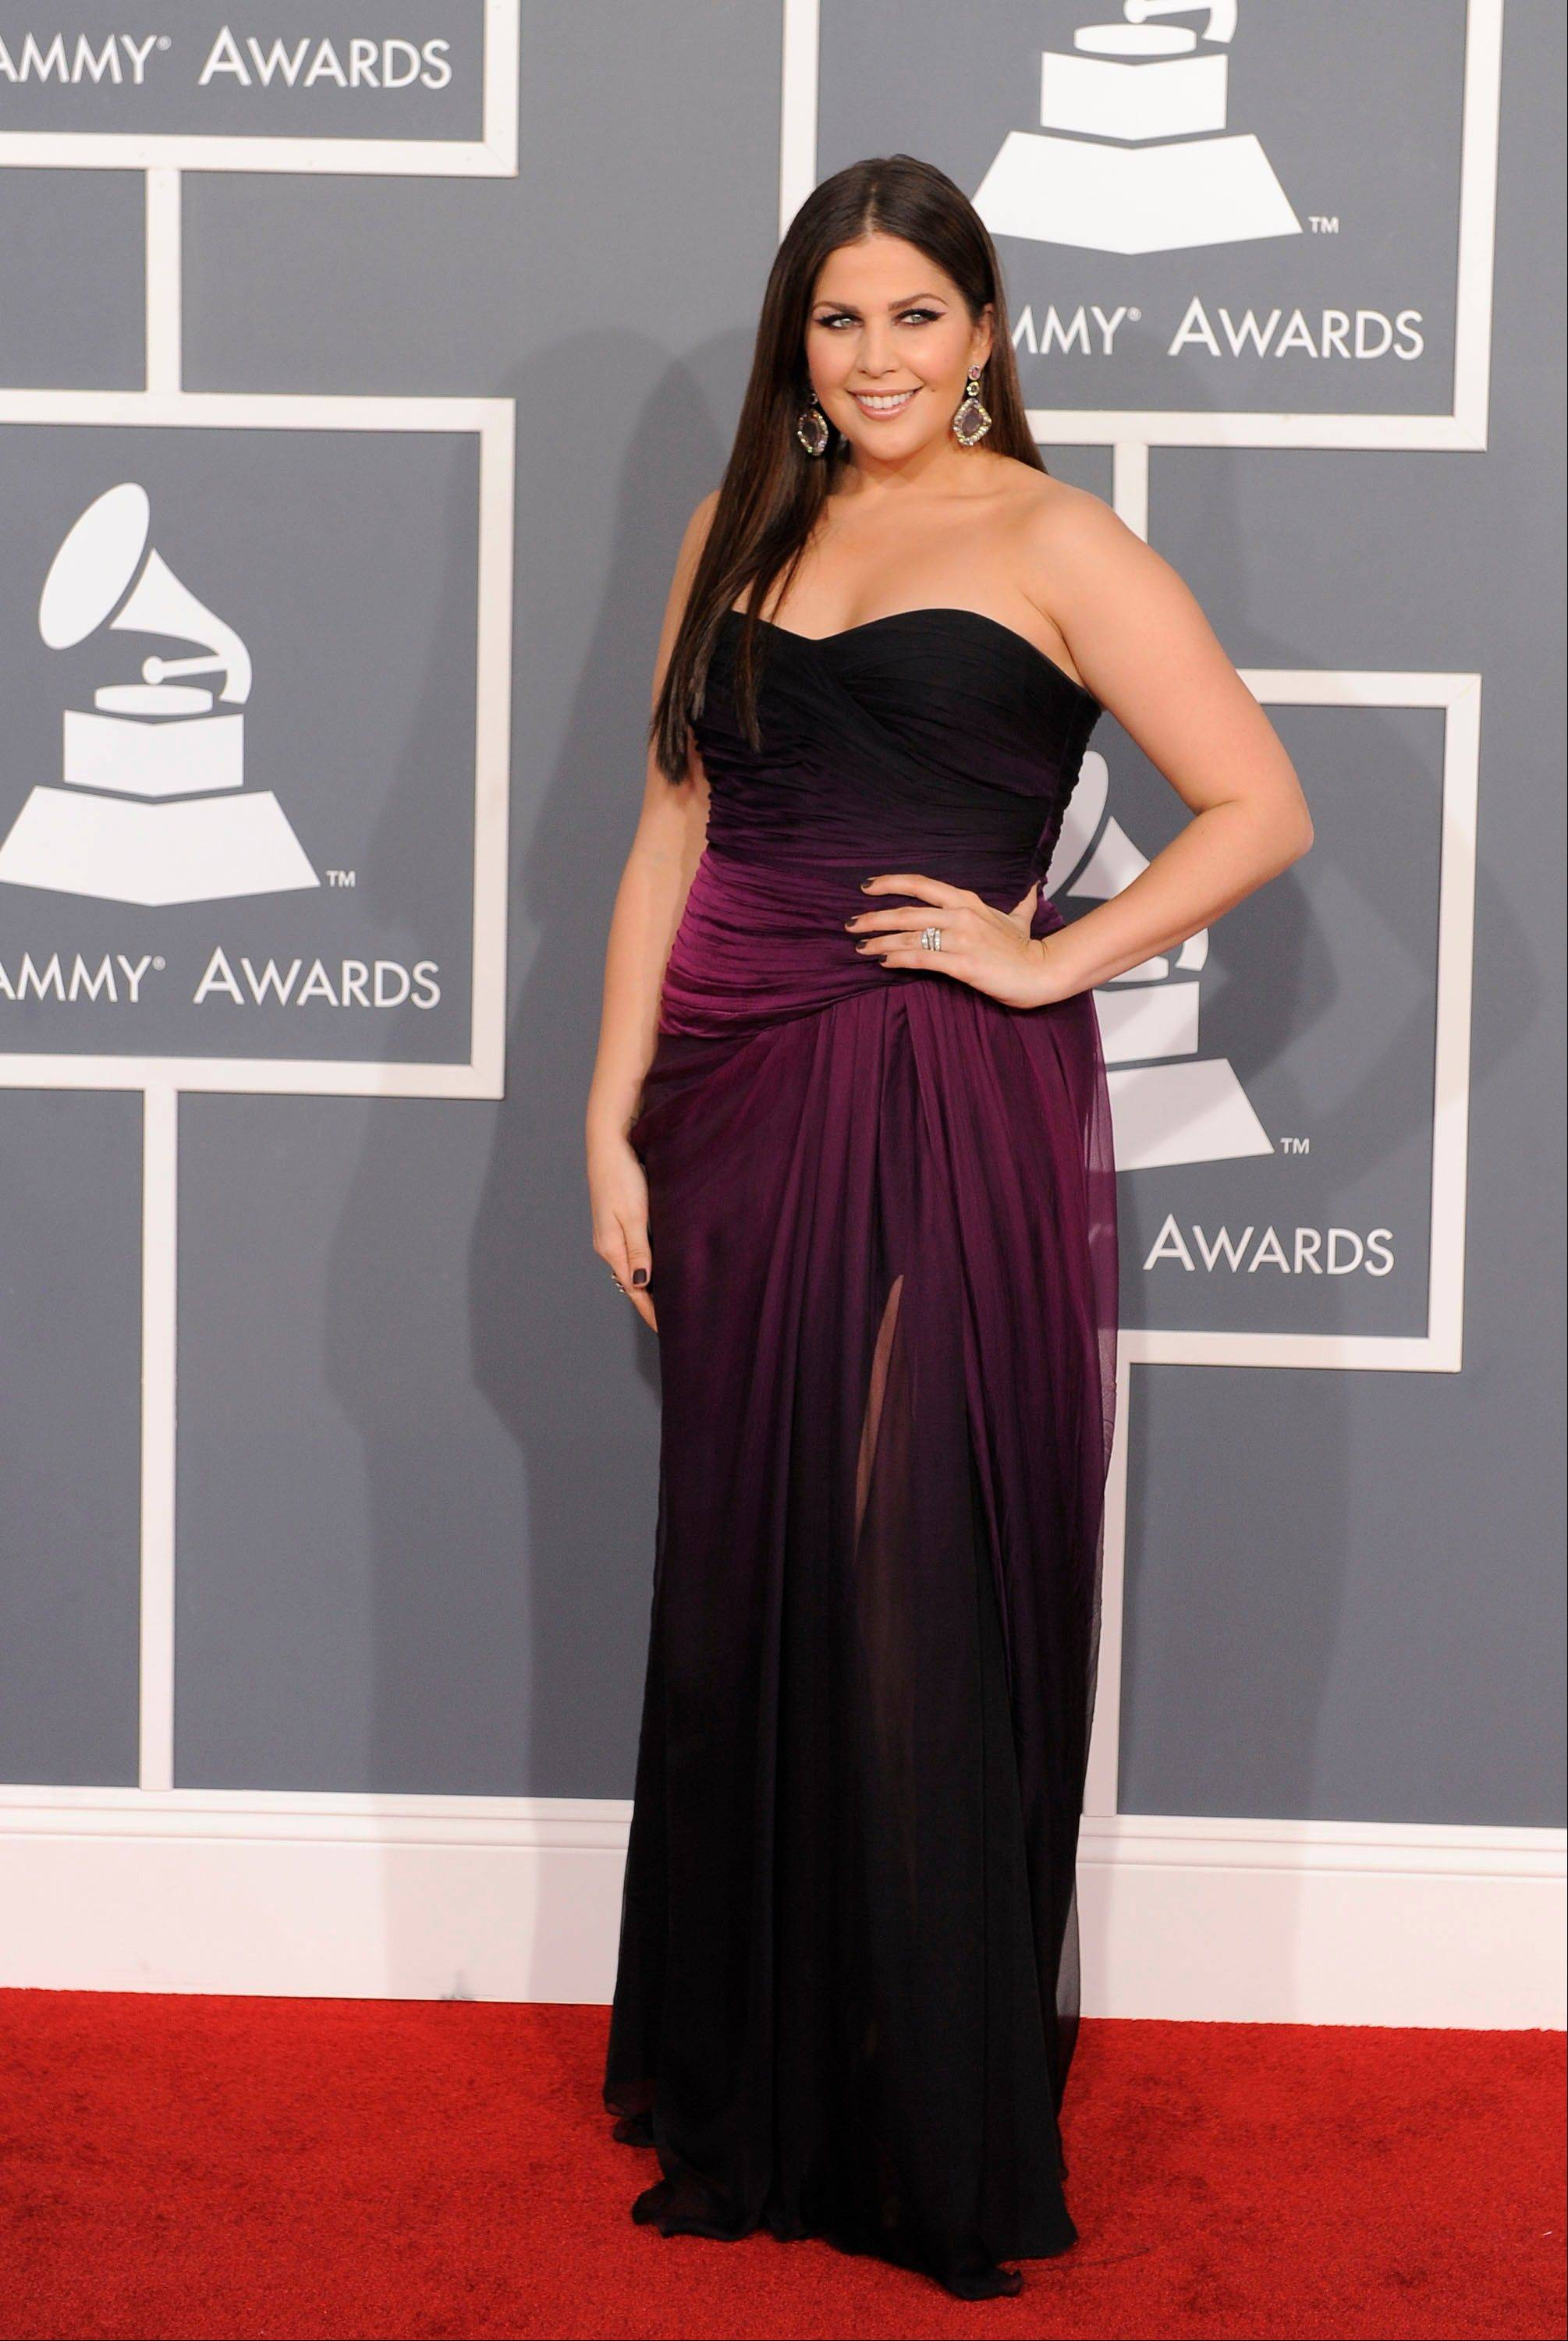 Hillary Scott, of musical group Lady Antebellum, arrives Sunday at the 54th annual Grammy Awards in Los Angeles.